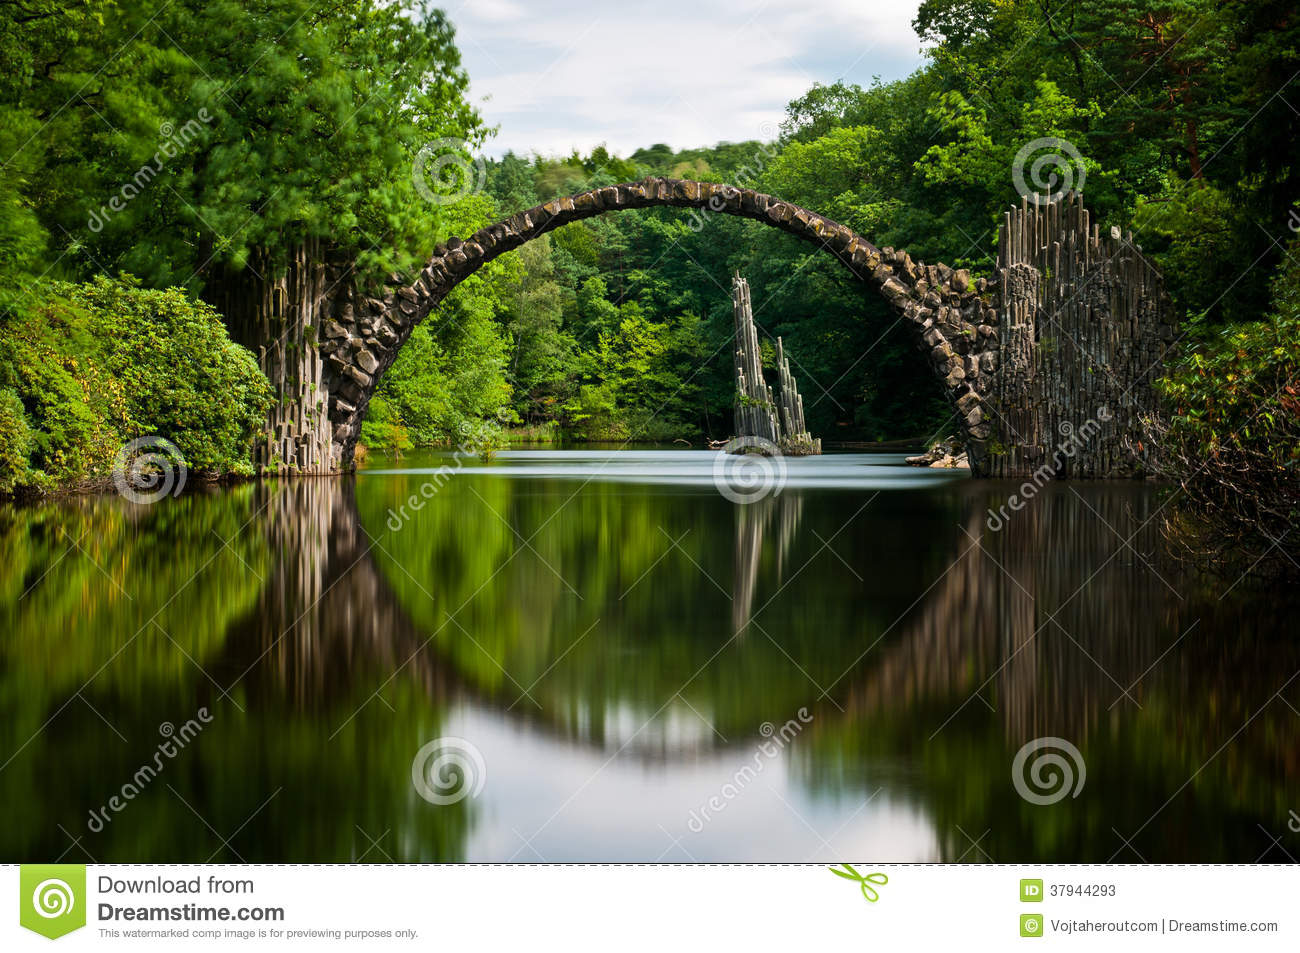 Old Stone Bridge Over The Quiet Lake With Its Reflection In The Water